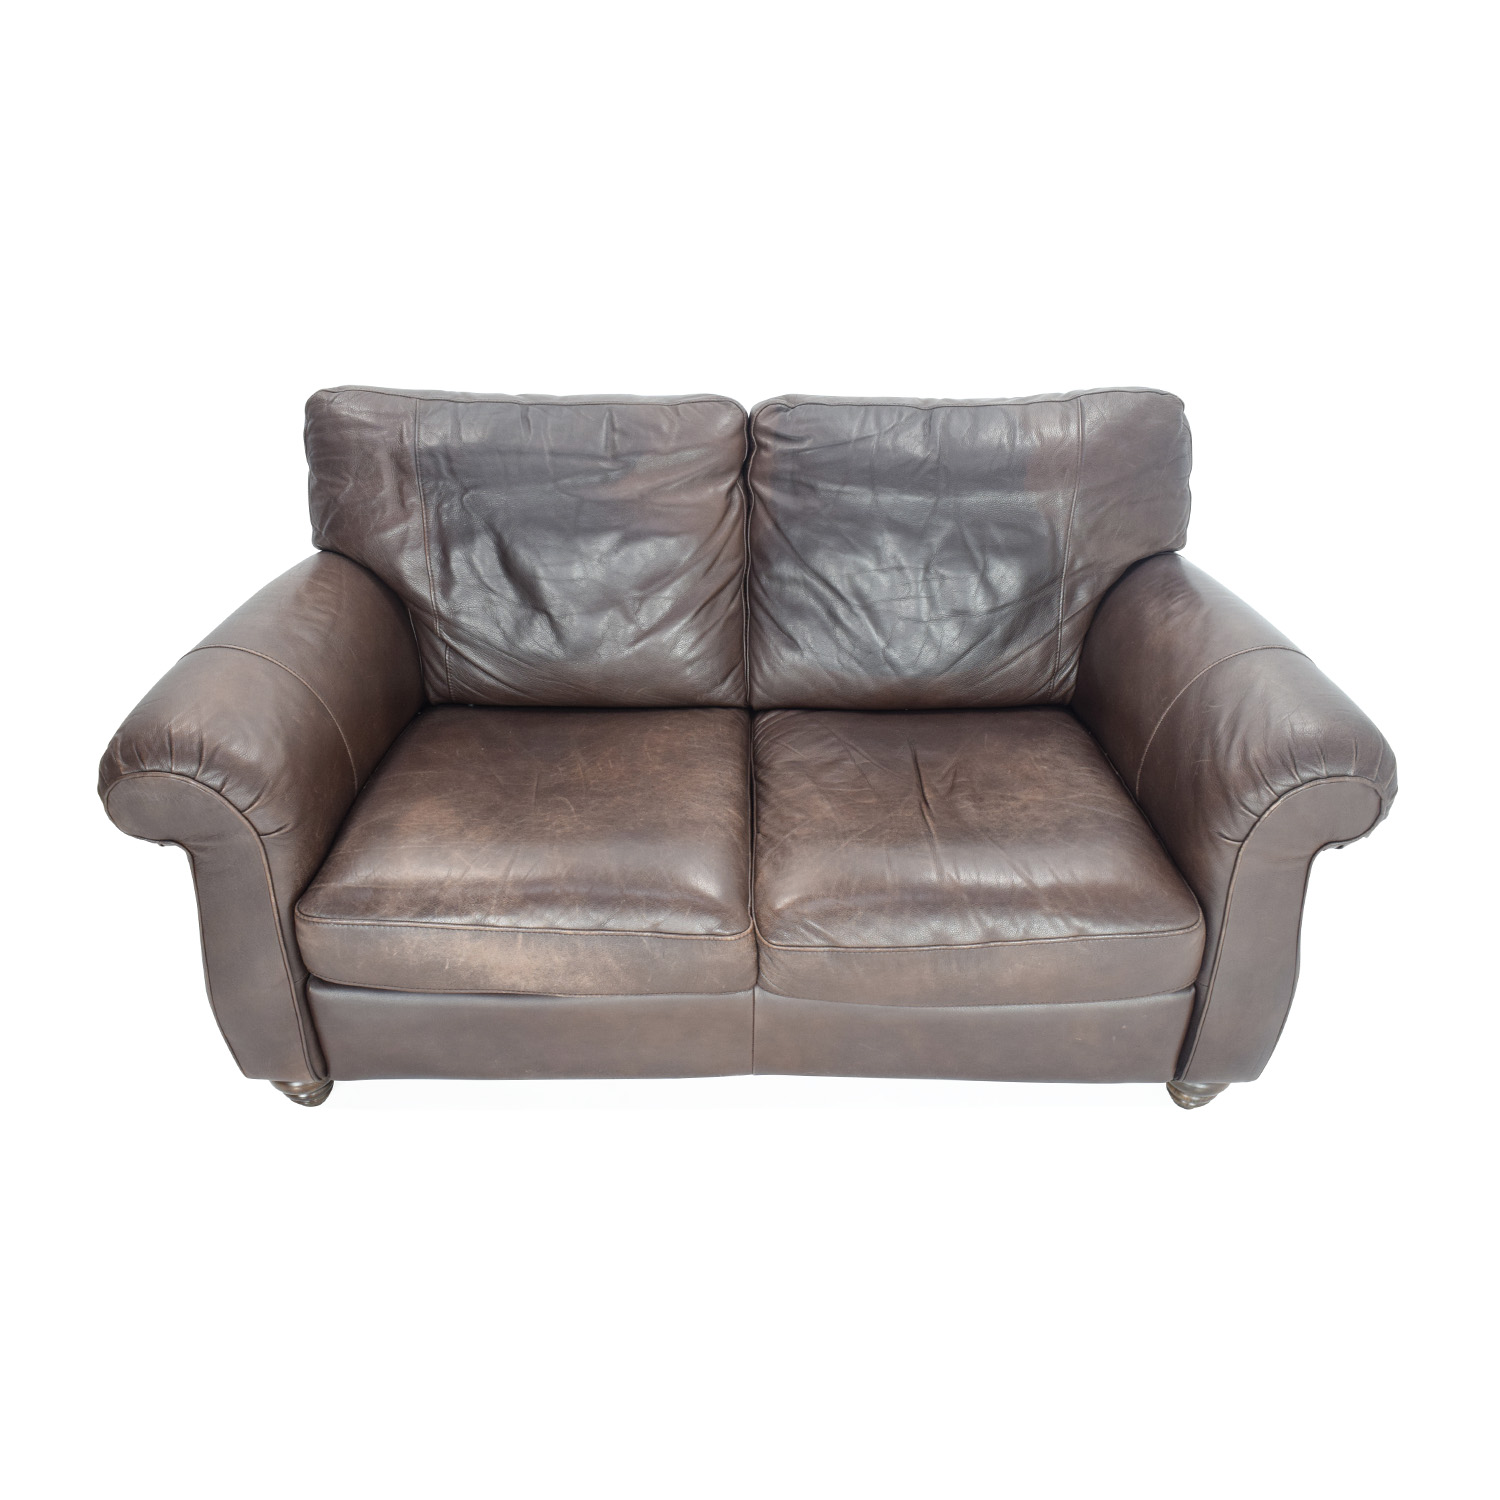 Natuzzi Natuzzi Brown Leather Loveseat used